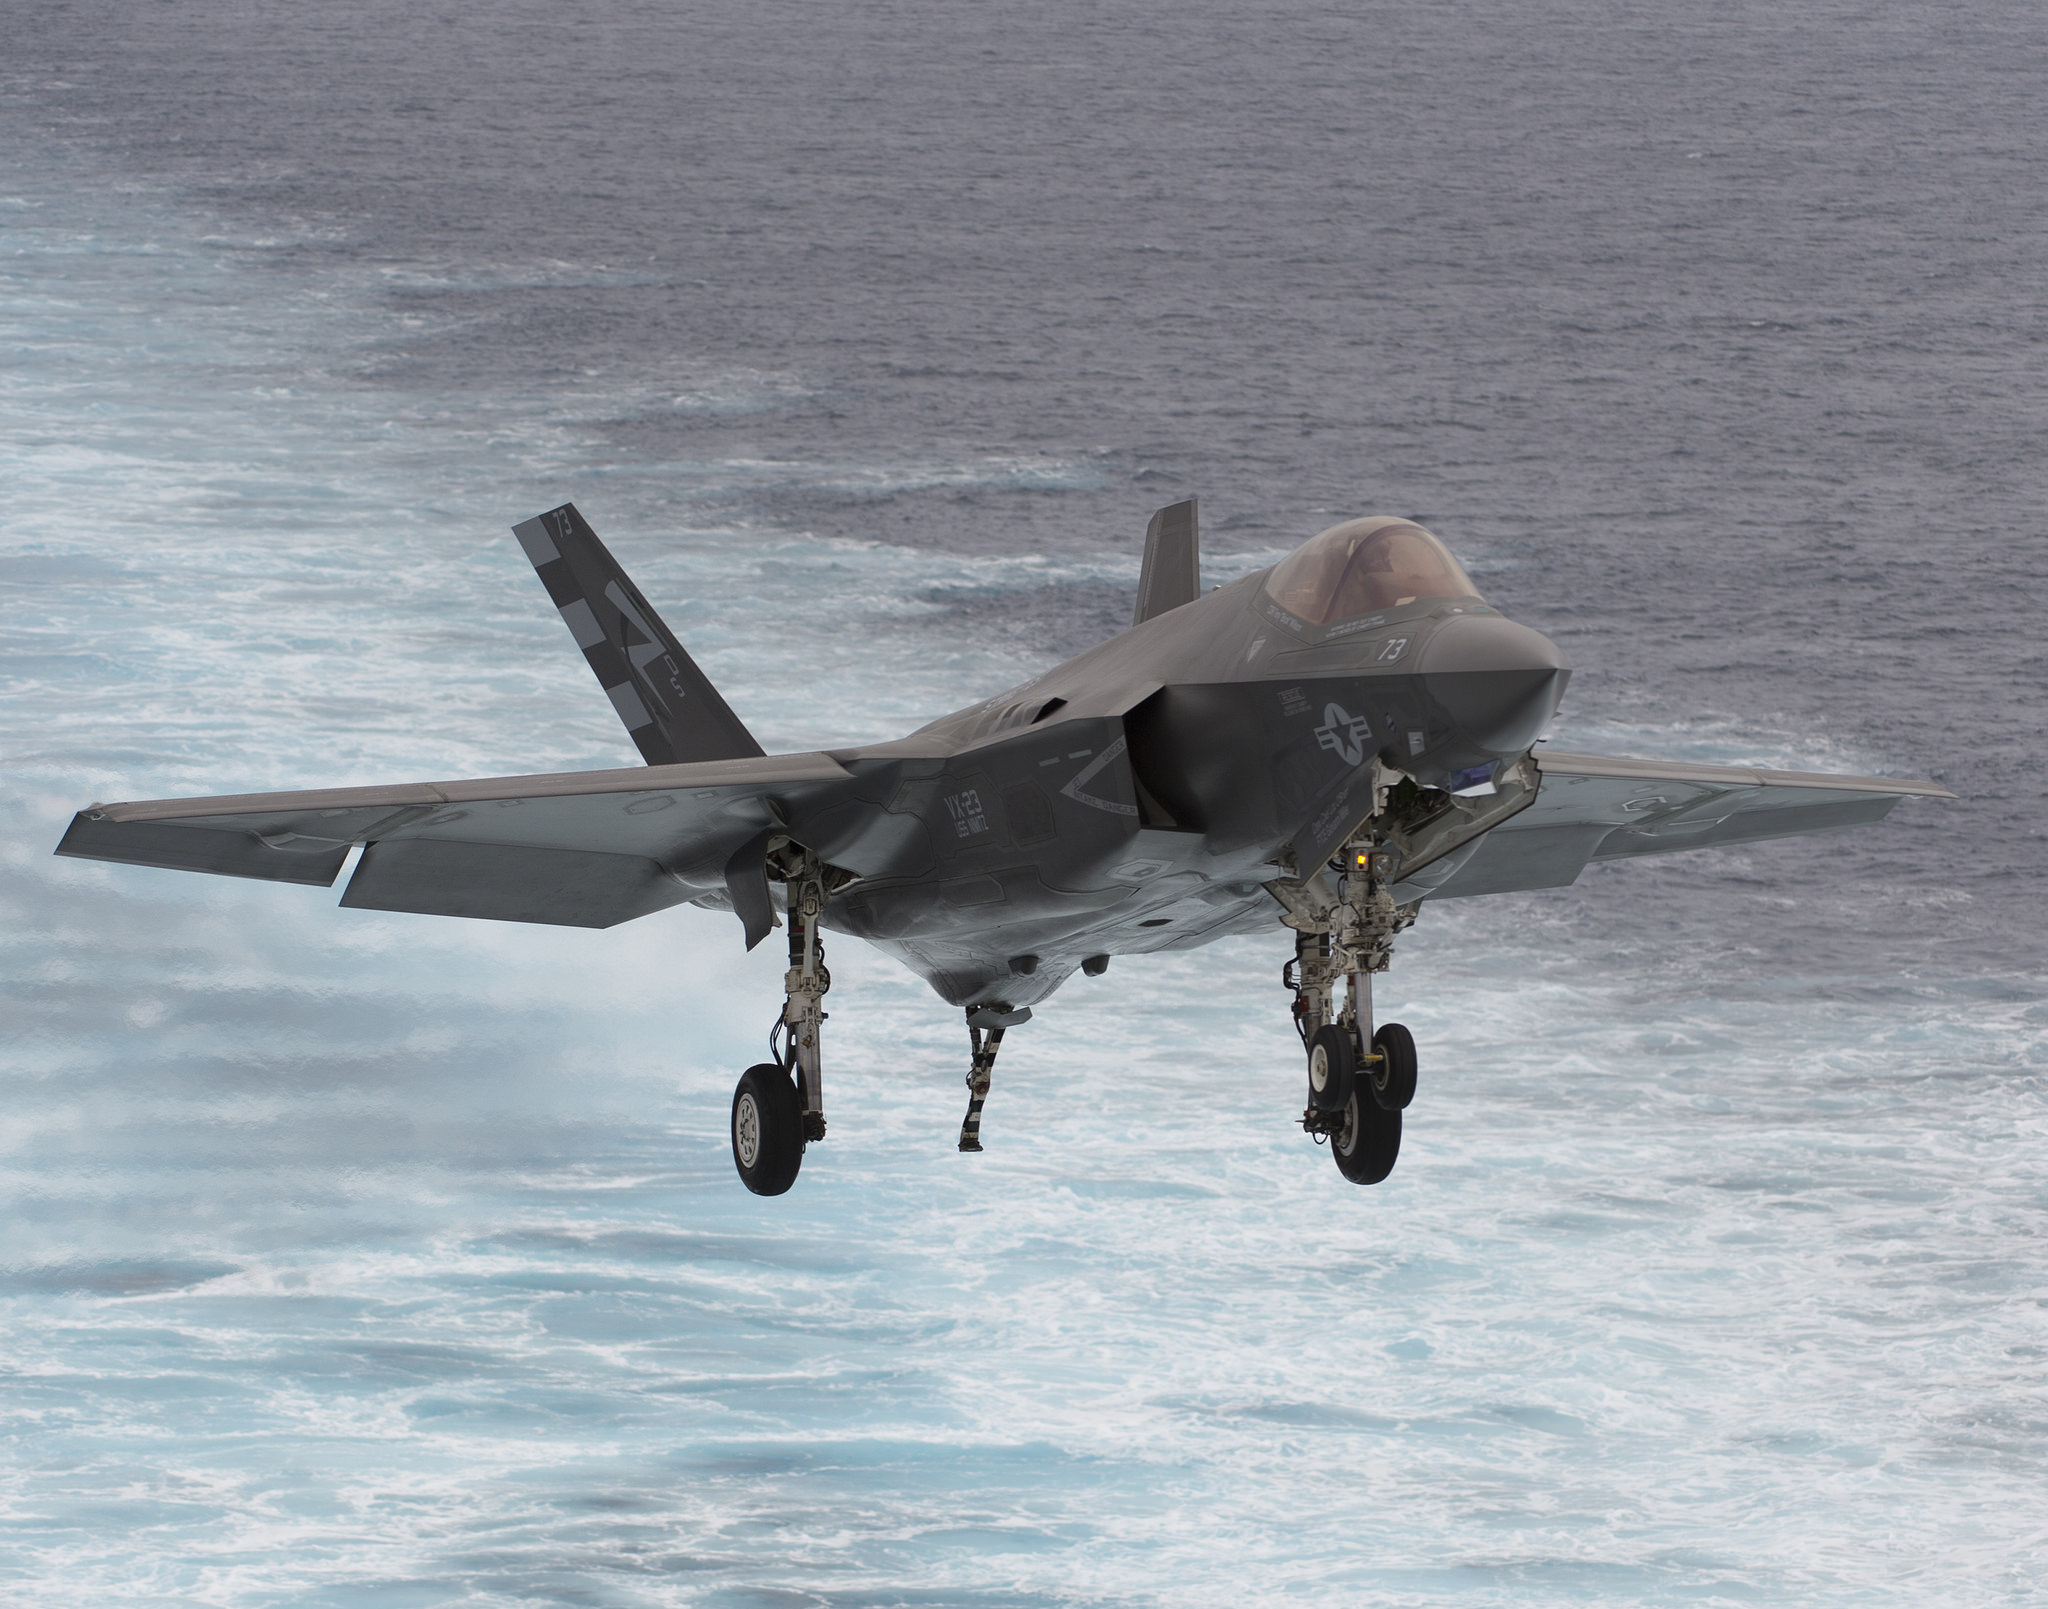 The F-35C during sea trials, landing aboard the aircraft carrier USS Nimitz on November 12, 2014.